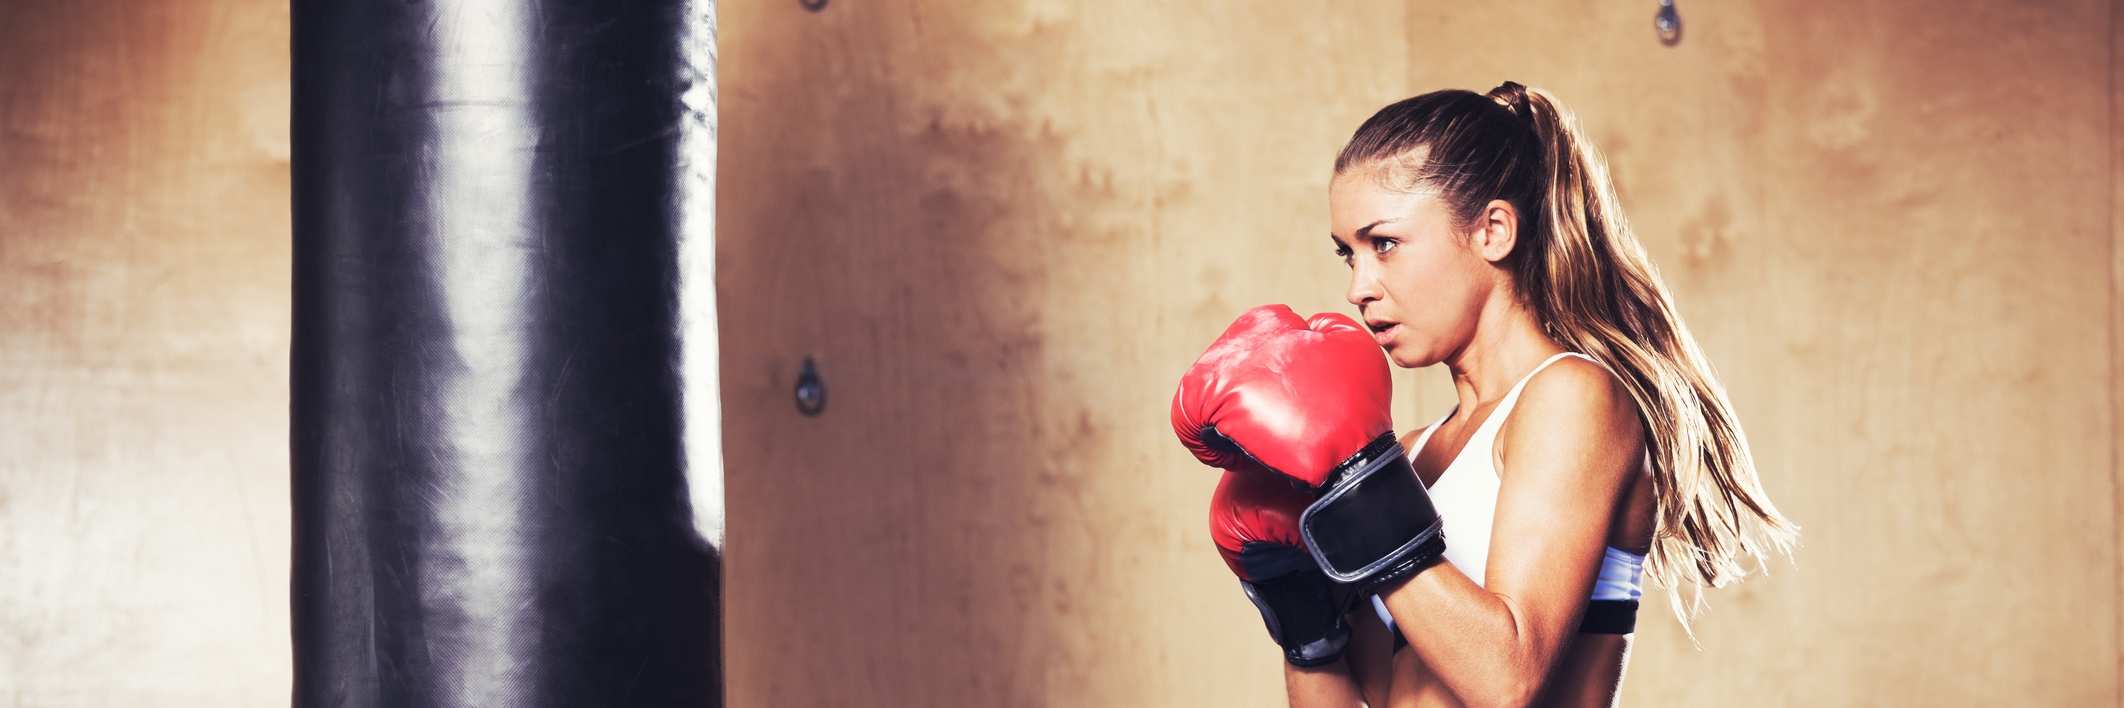 Woman wearing boxing gloves and ready to fight if she needs to.